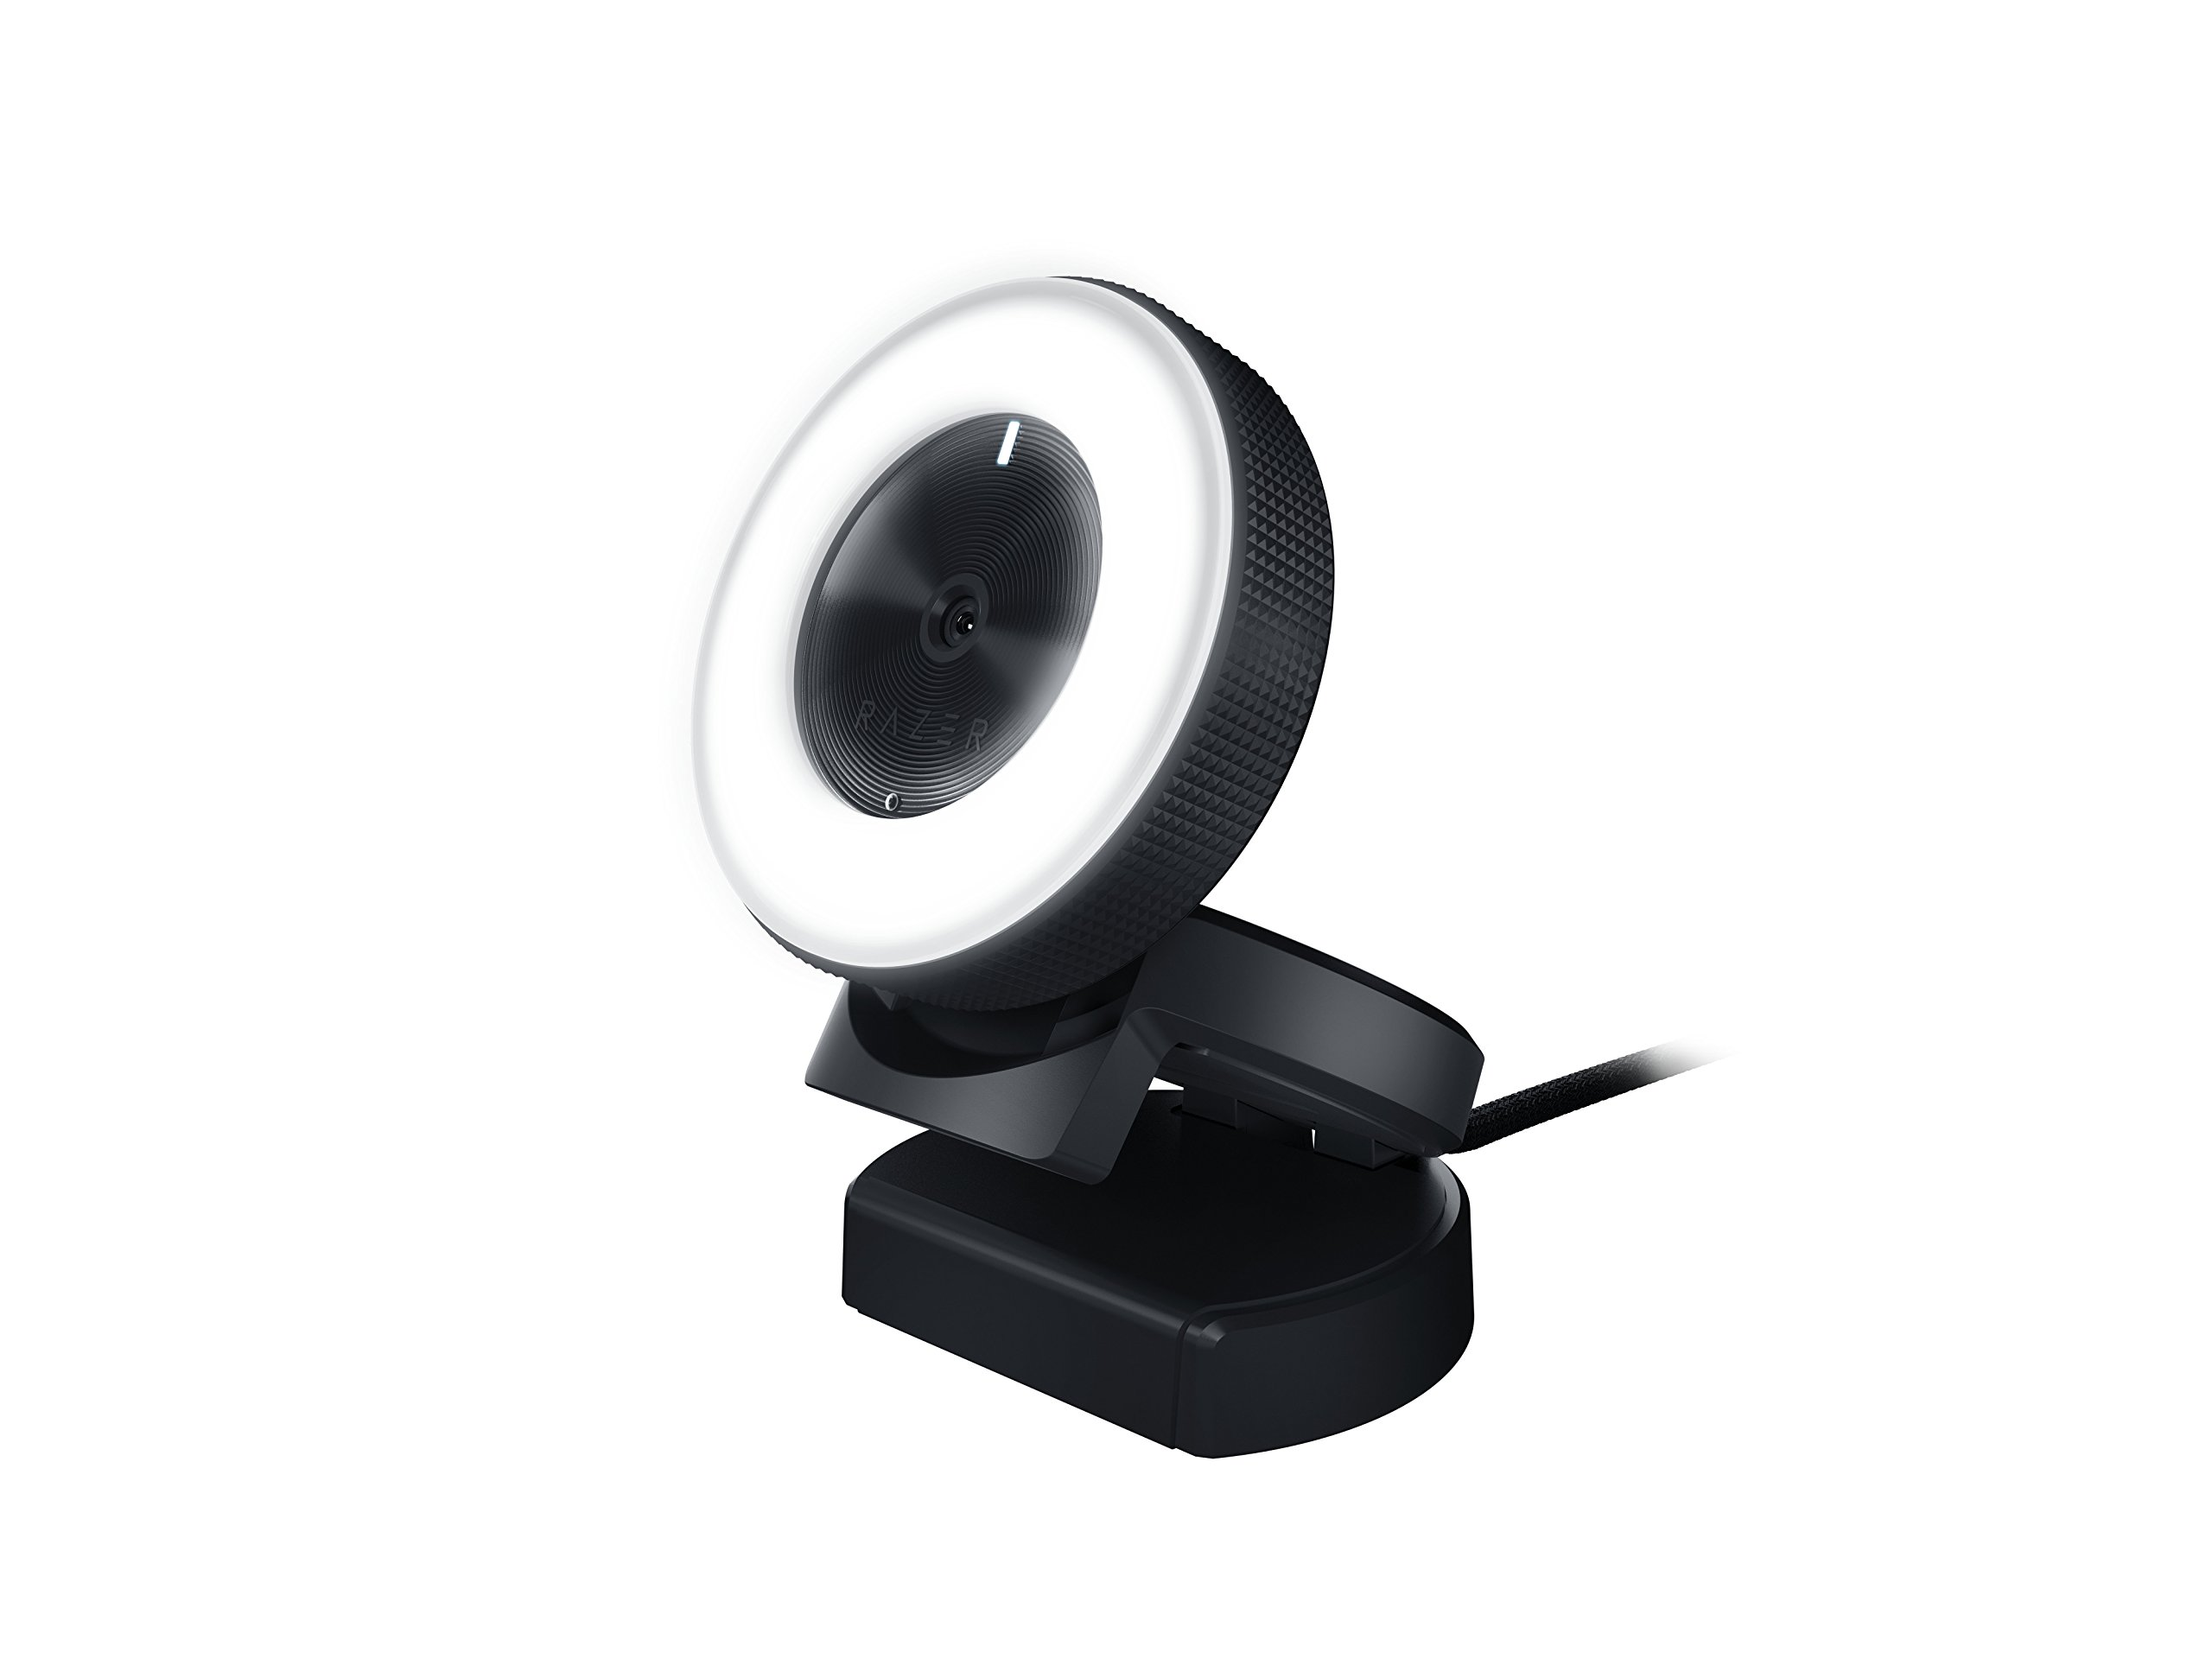 Razer Kiyo: Full HD 1080p 30FPS / 720p 60FPS - Built in Adjustable Ring Light - Advanced Autofocus Feature - Streaming Web Camera